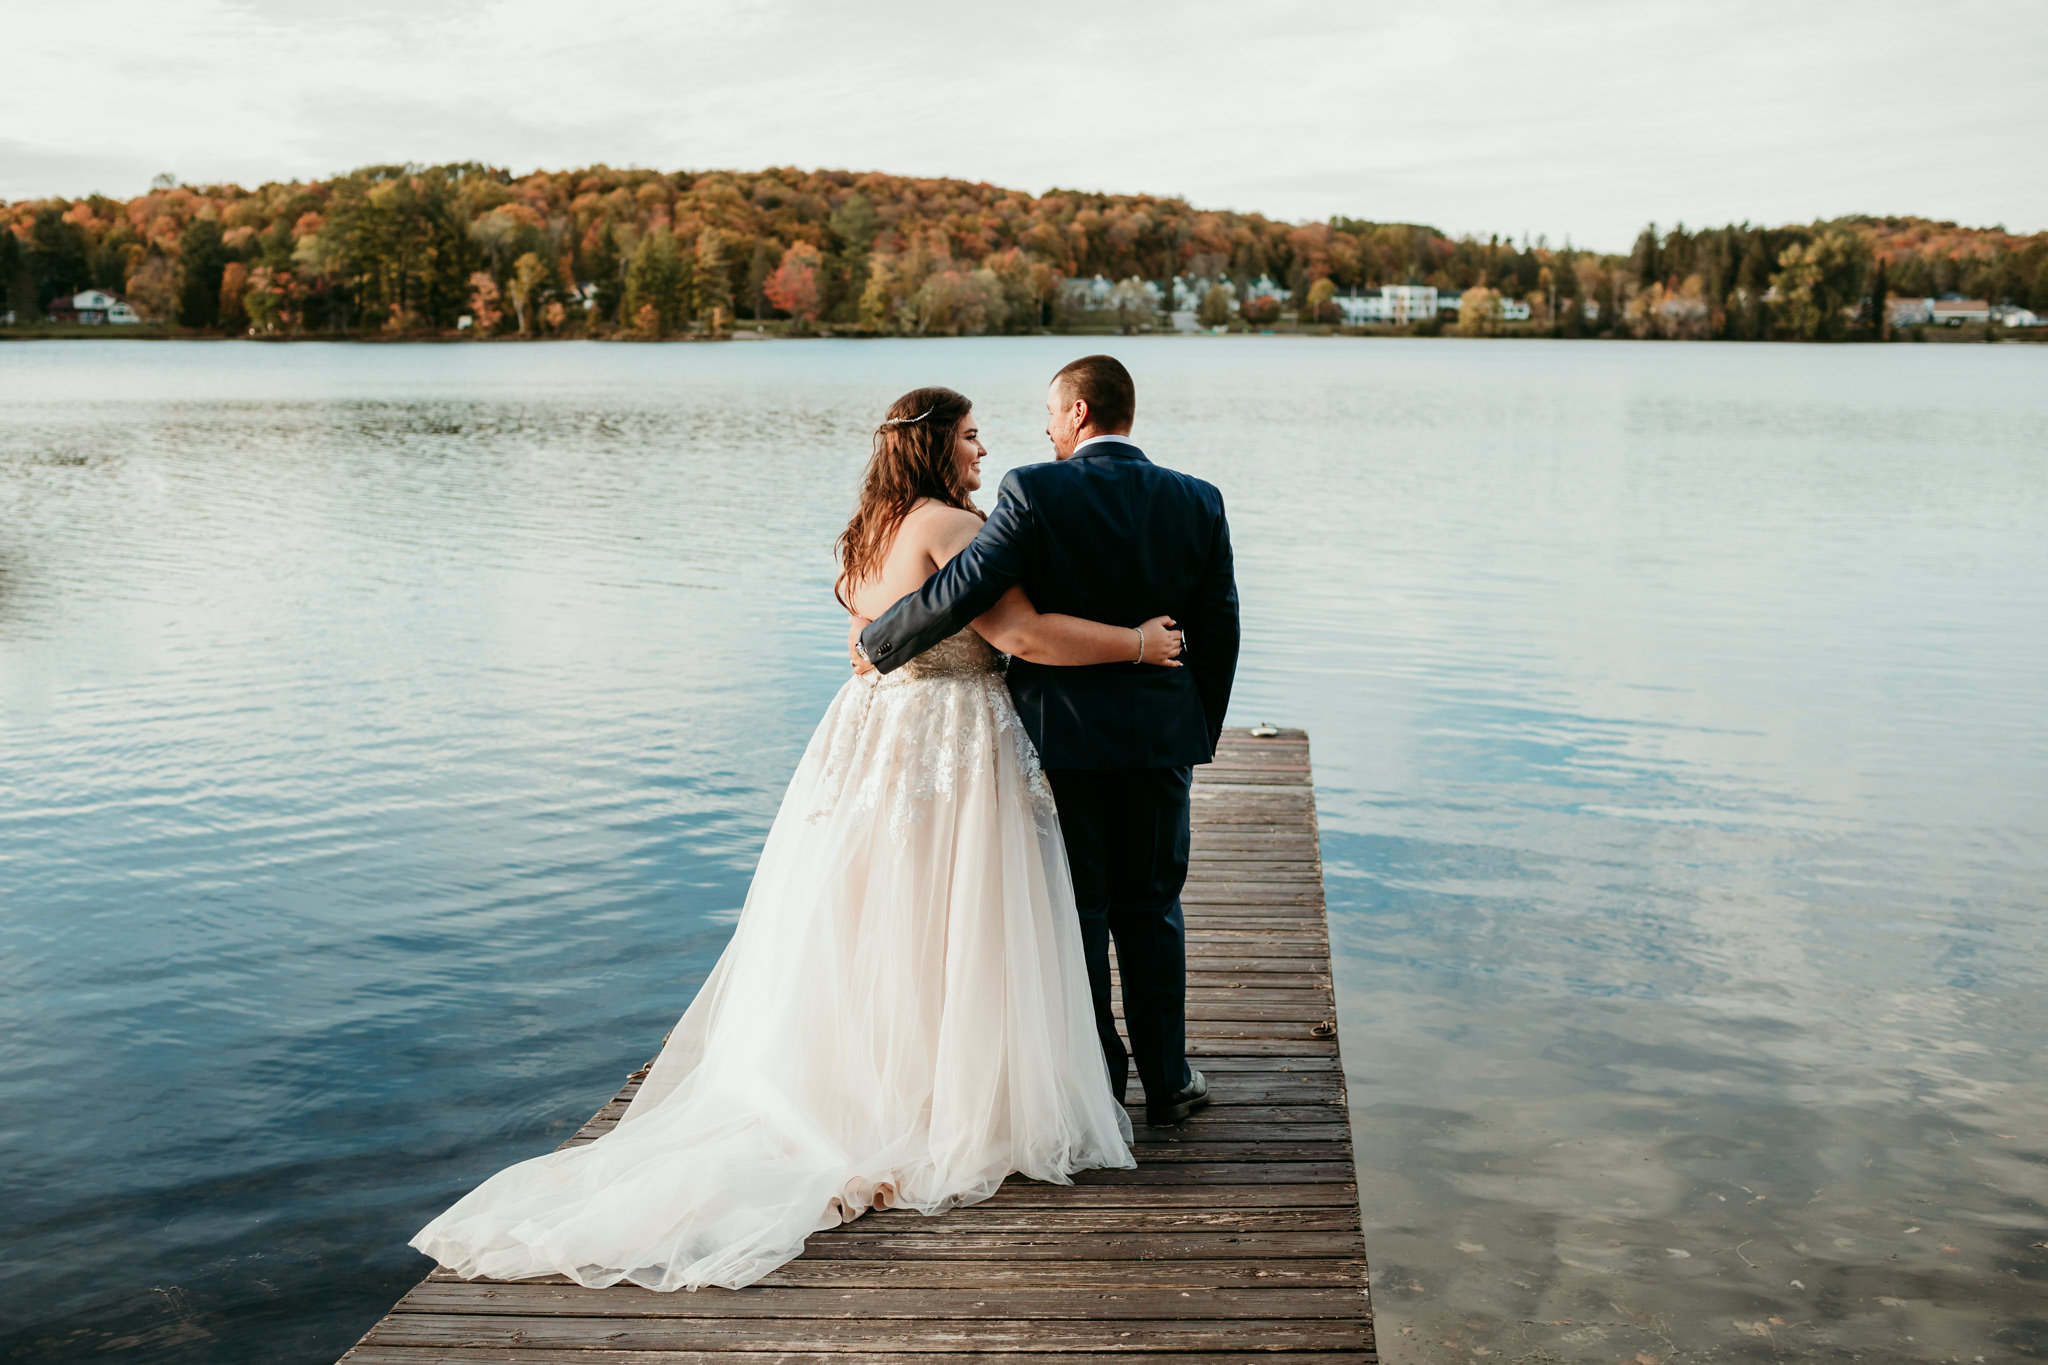 groom and bride hugging while standing on a dock looking out at lake